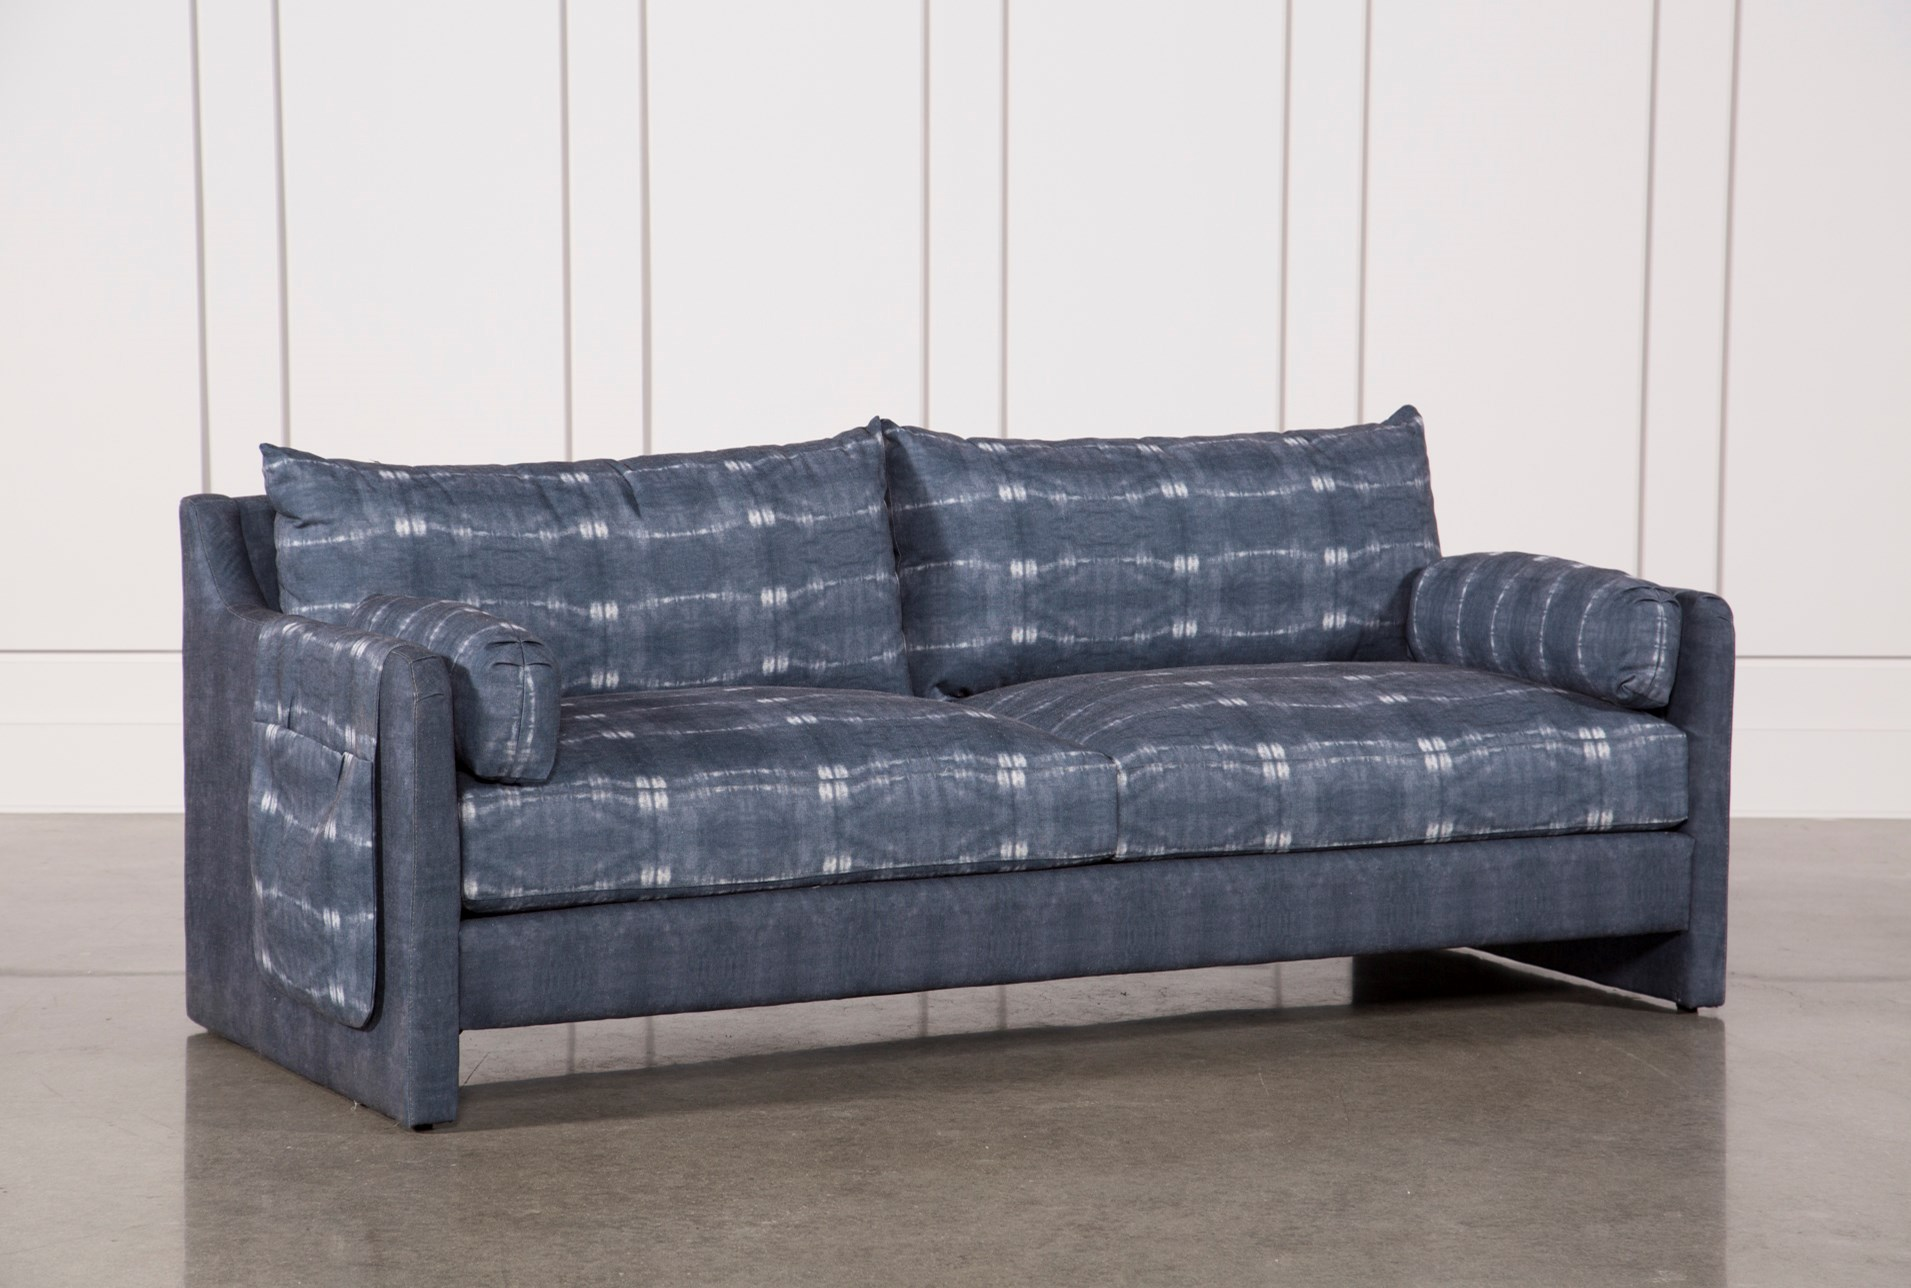 pleasurable designer sofa throws. Justina Blakeney Les Estate Sofa Fabric Sofas  Couches Free Assembly with Delivery Living Spaces